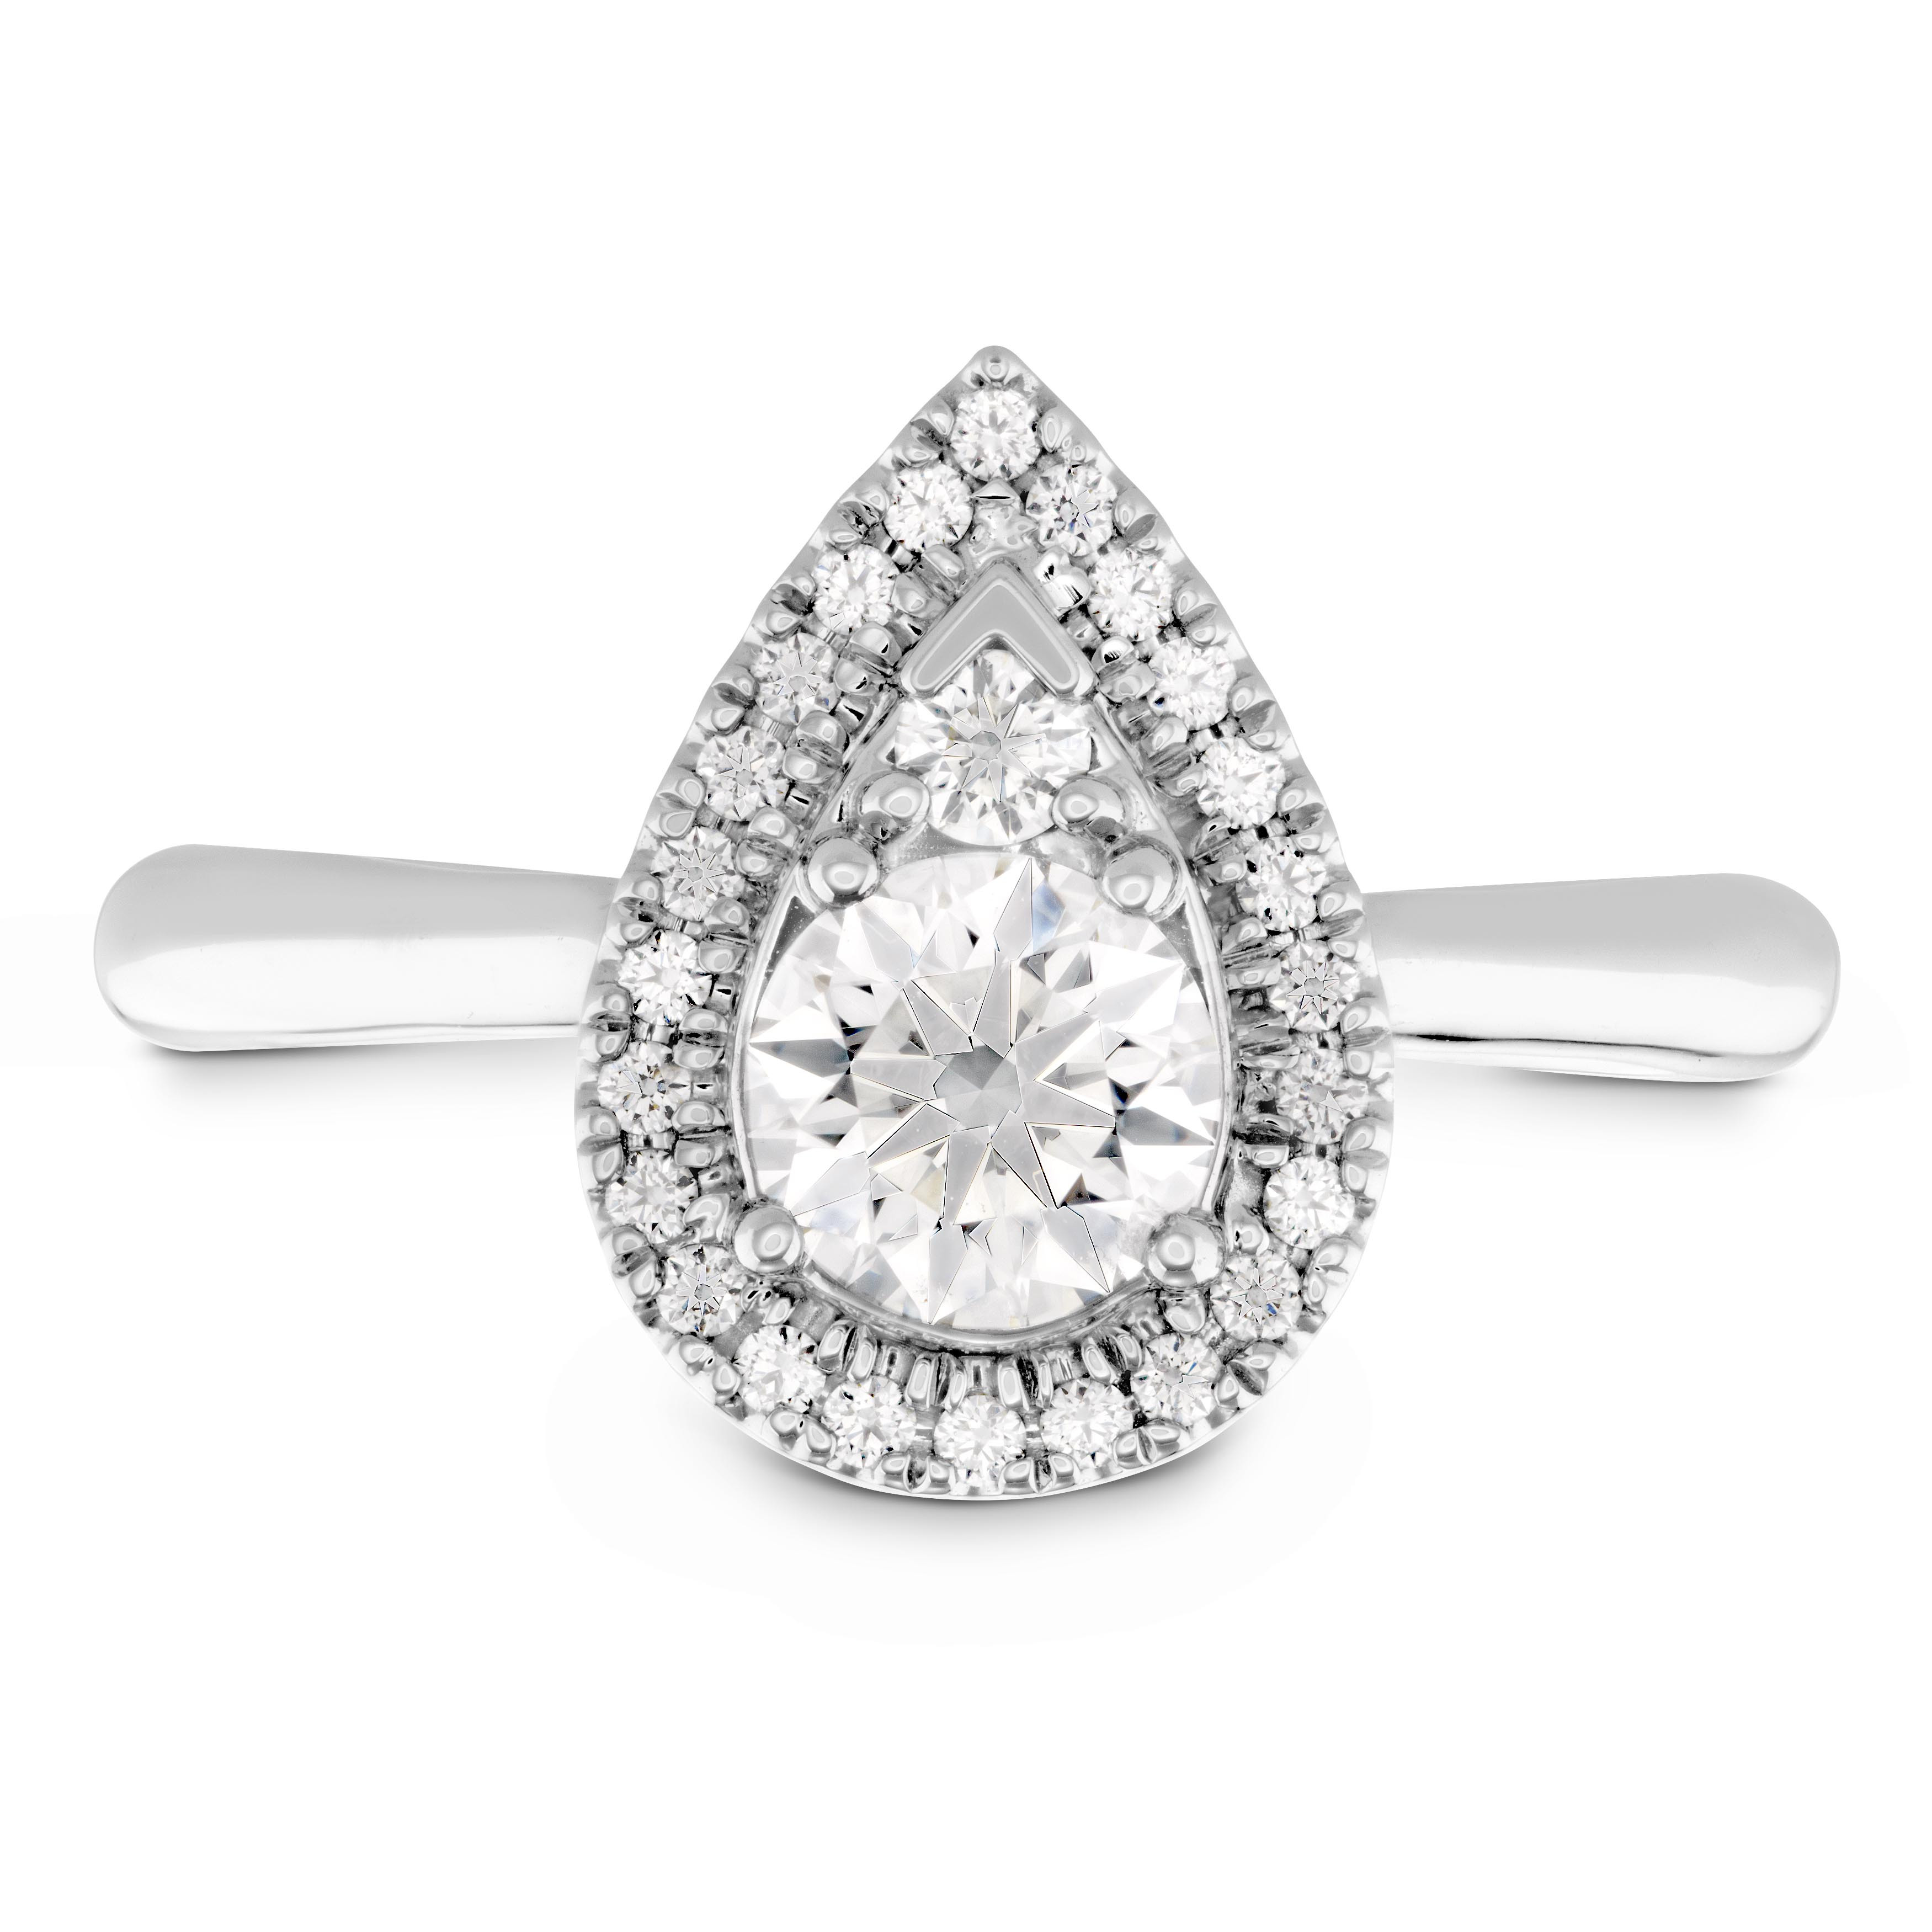 New Hearts Fire 0 47 CTW Diamond Destiny Halo Engagement Ring Shop Jewe